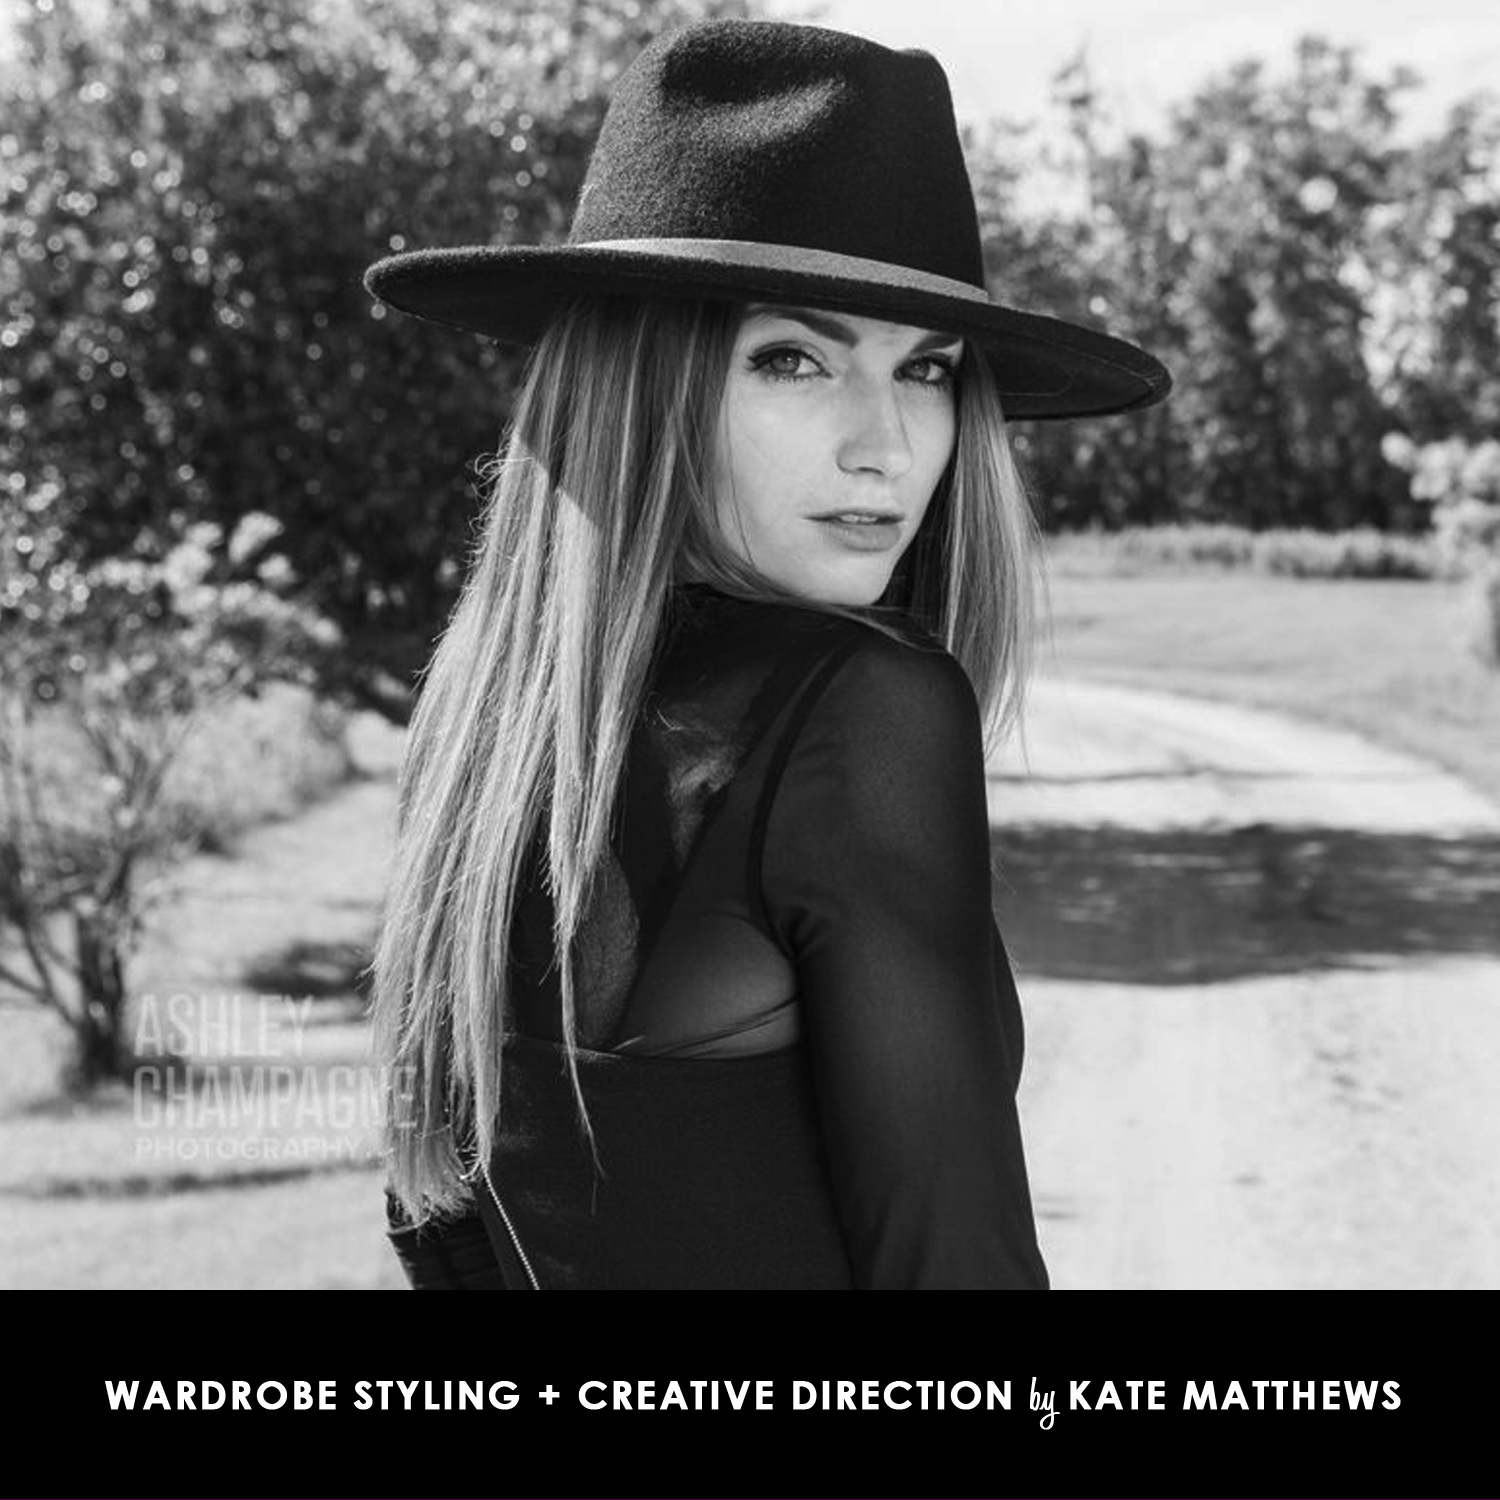 WARDROBE-STYLIST-KATE-MATTHEWS-MUSICIANS-MUSIC-COUNTRY-AMY-METCALFE